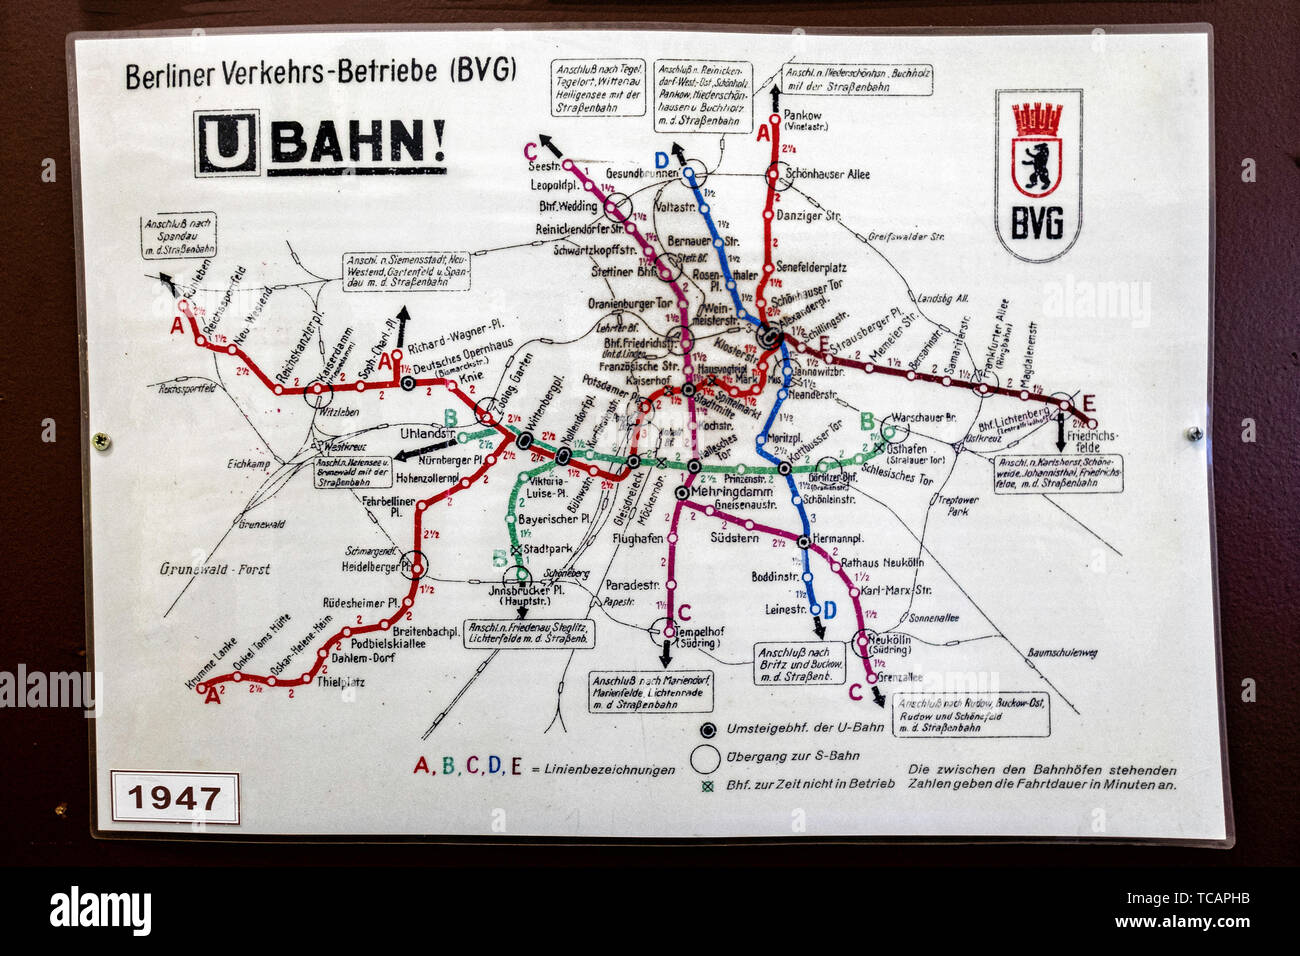 U-Bahn Museum Berlin. Transport museum in one of the former historic control rooms at the Olympia Stadium metro station. Old 1947 U-Bahn map The contr Stock Photo